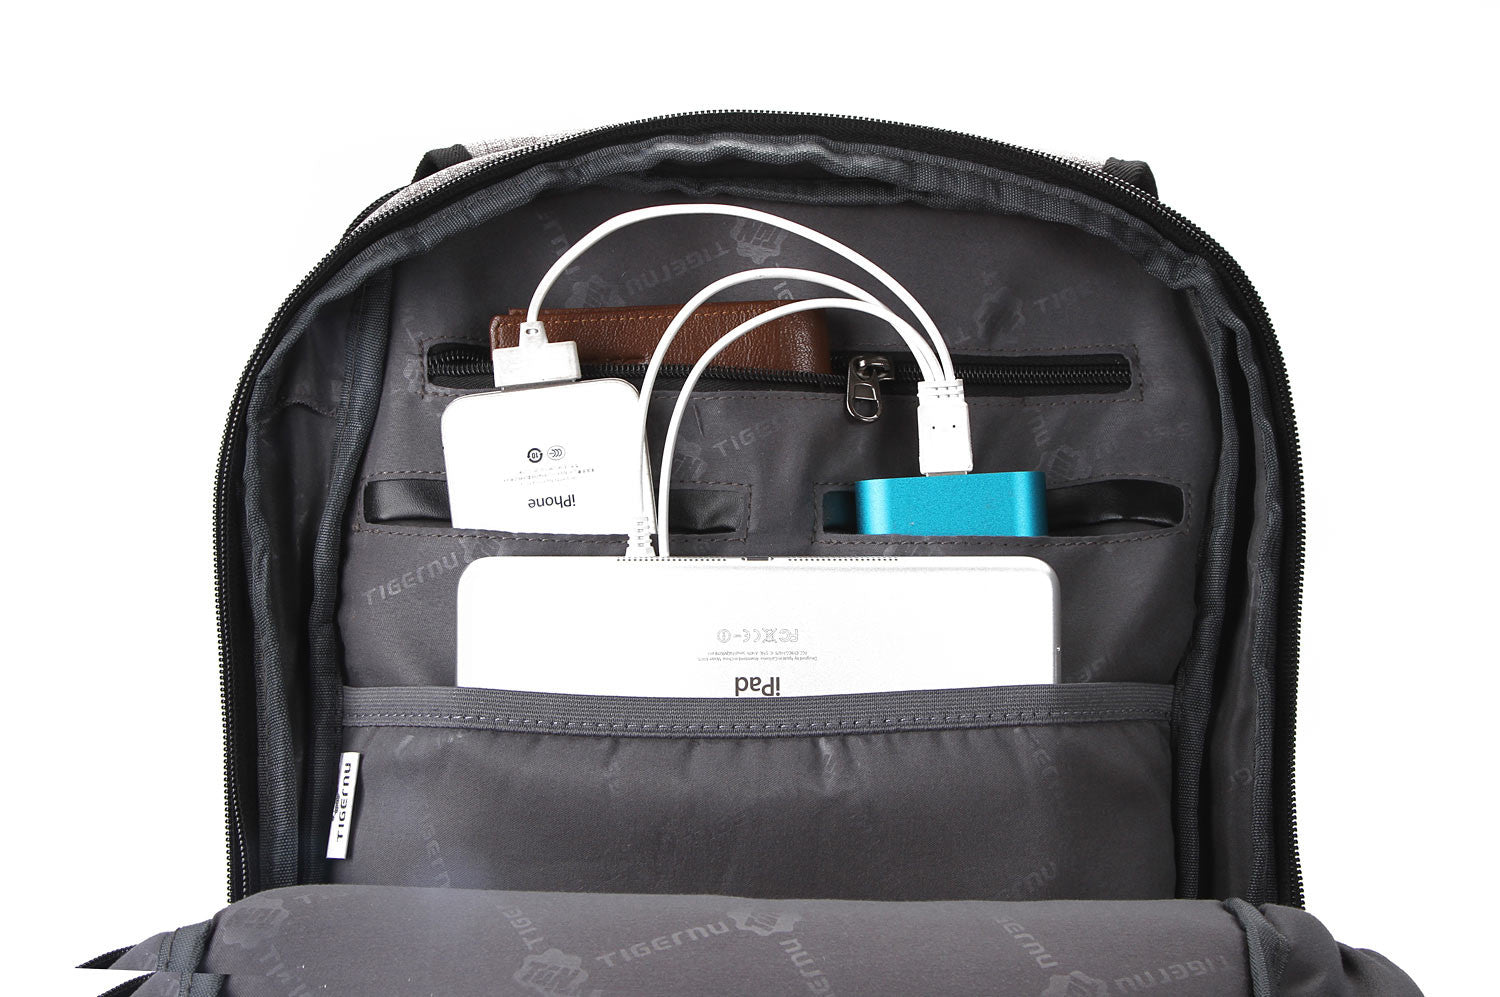 Powerbank backpack charge devices